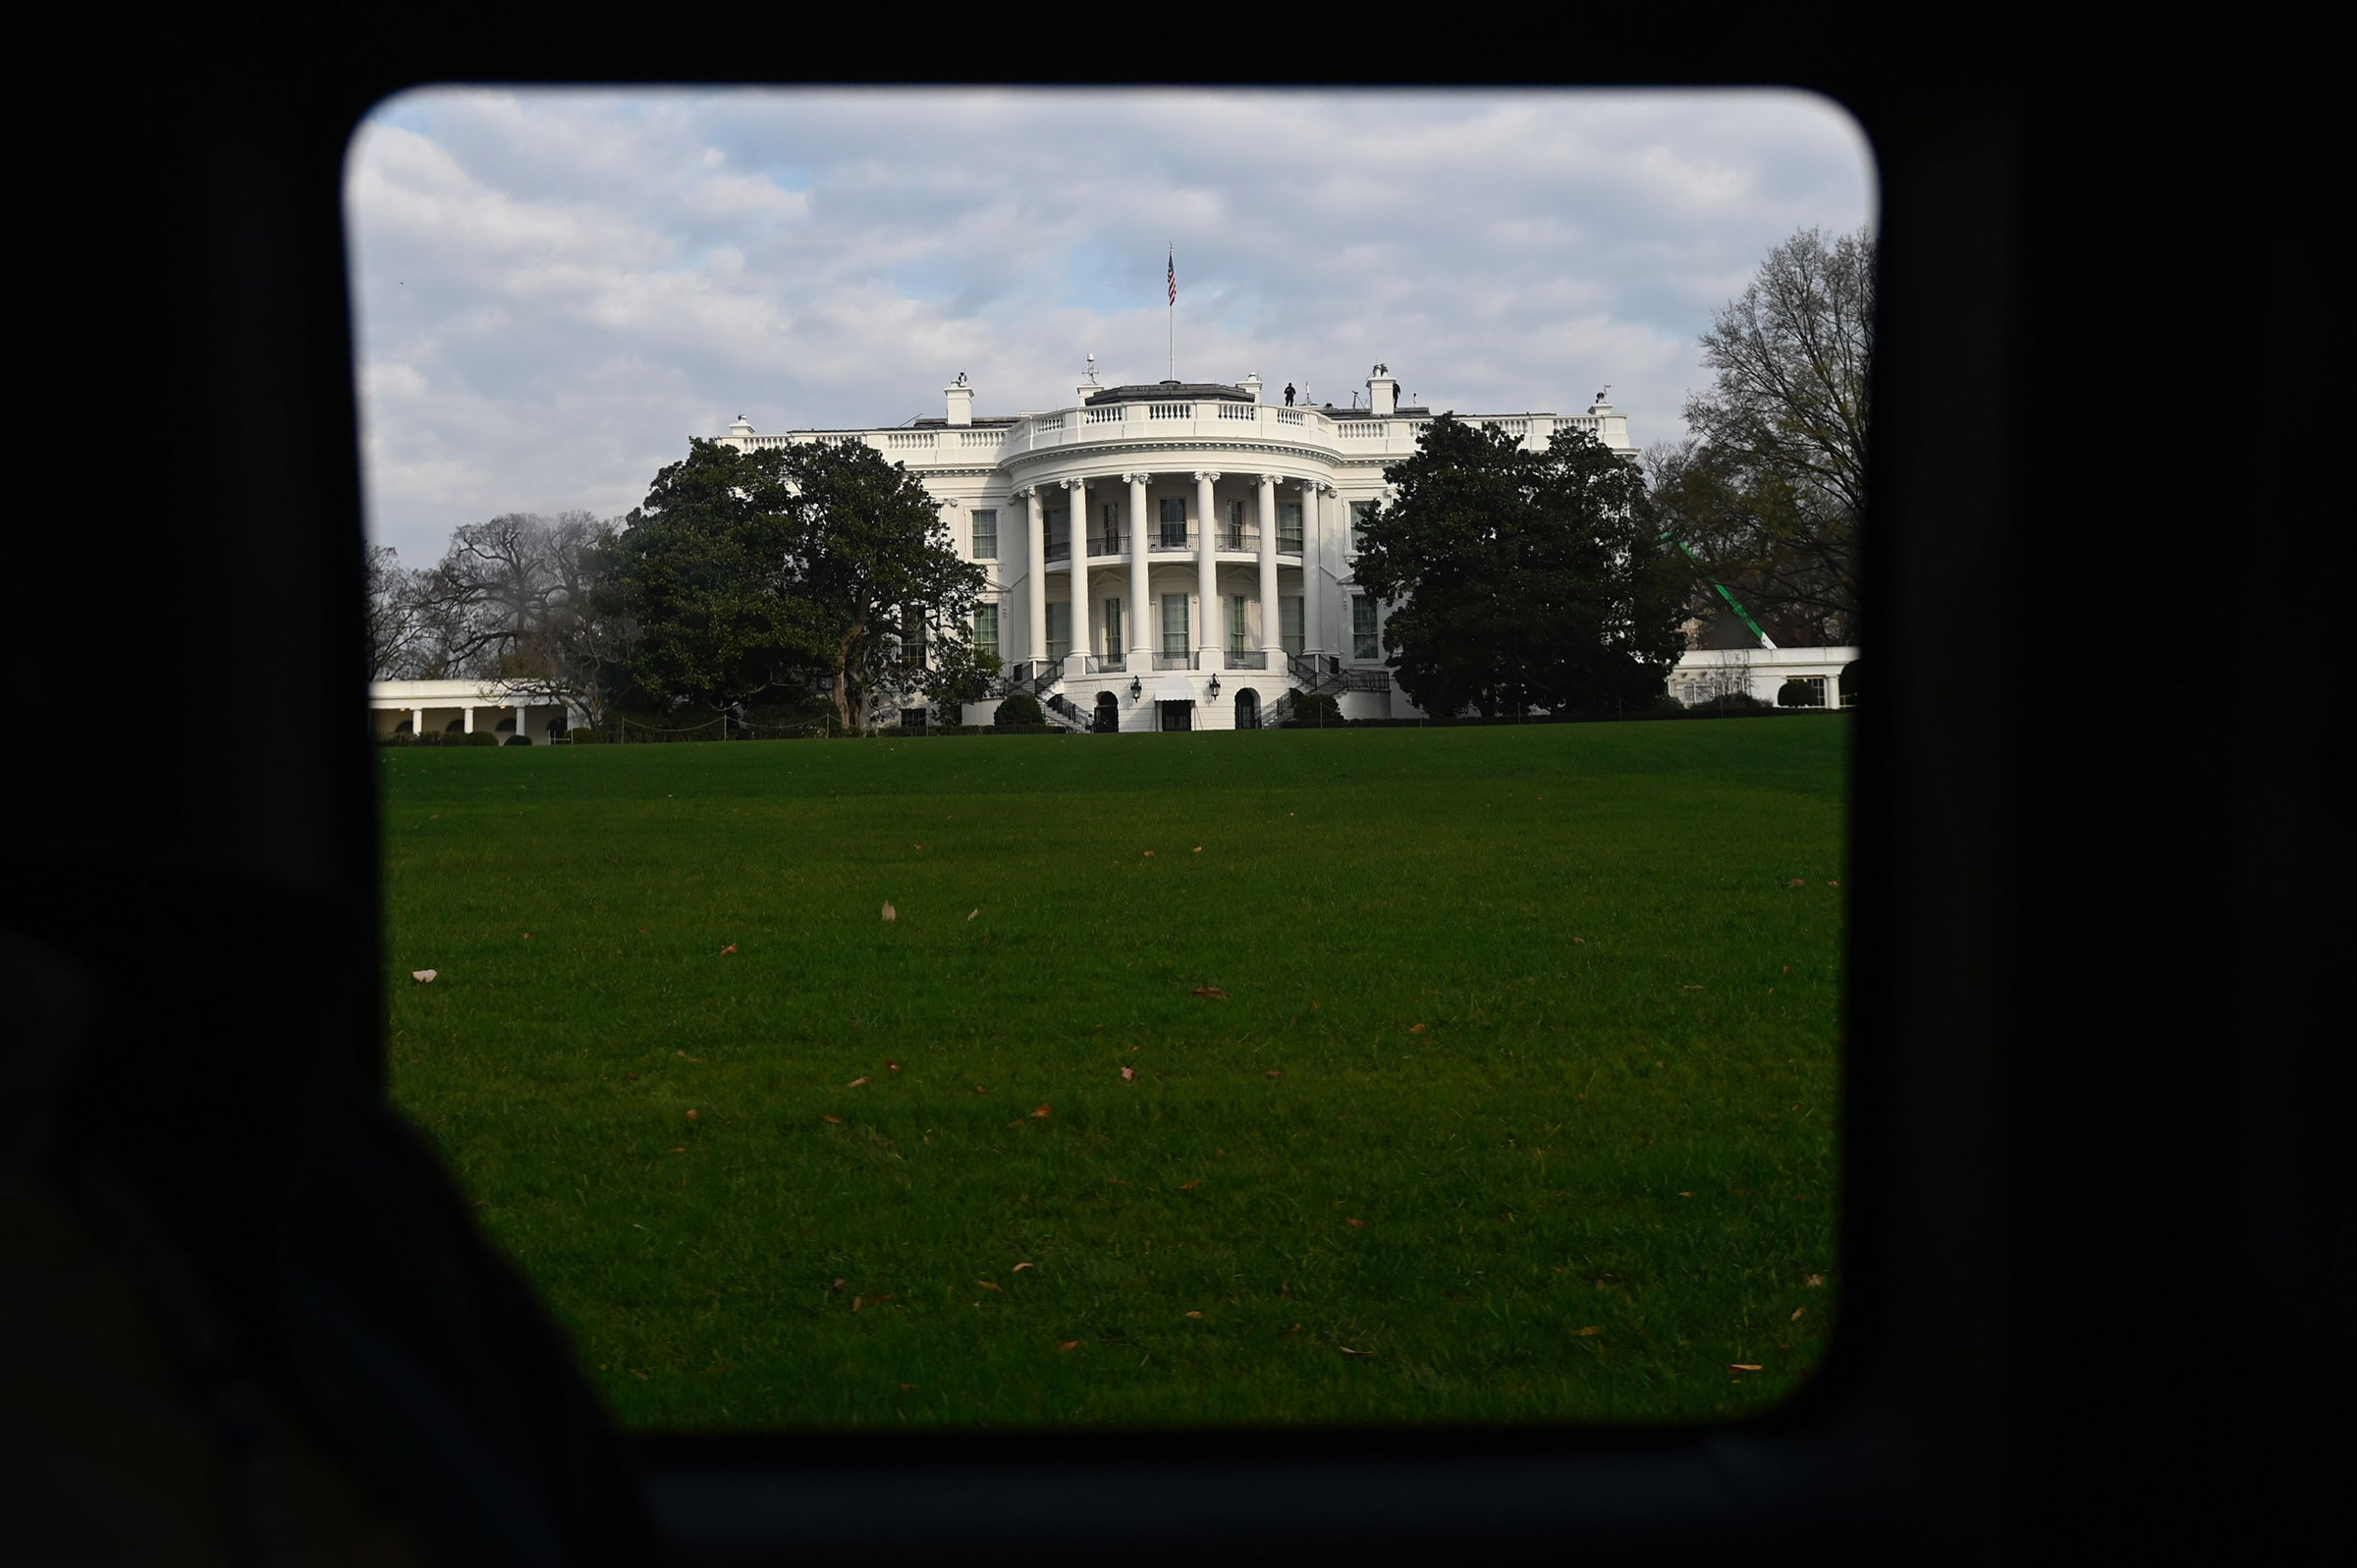 The White House is seen through a vehicle in the presidential motorcade in Washington, on Nov. 21, 2020.